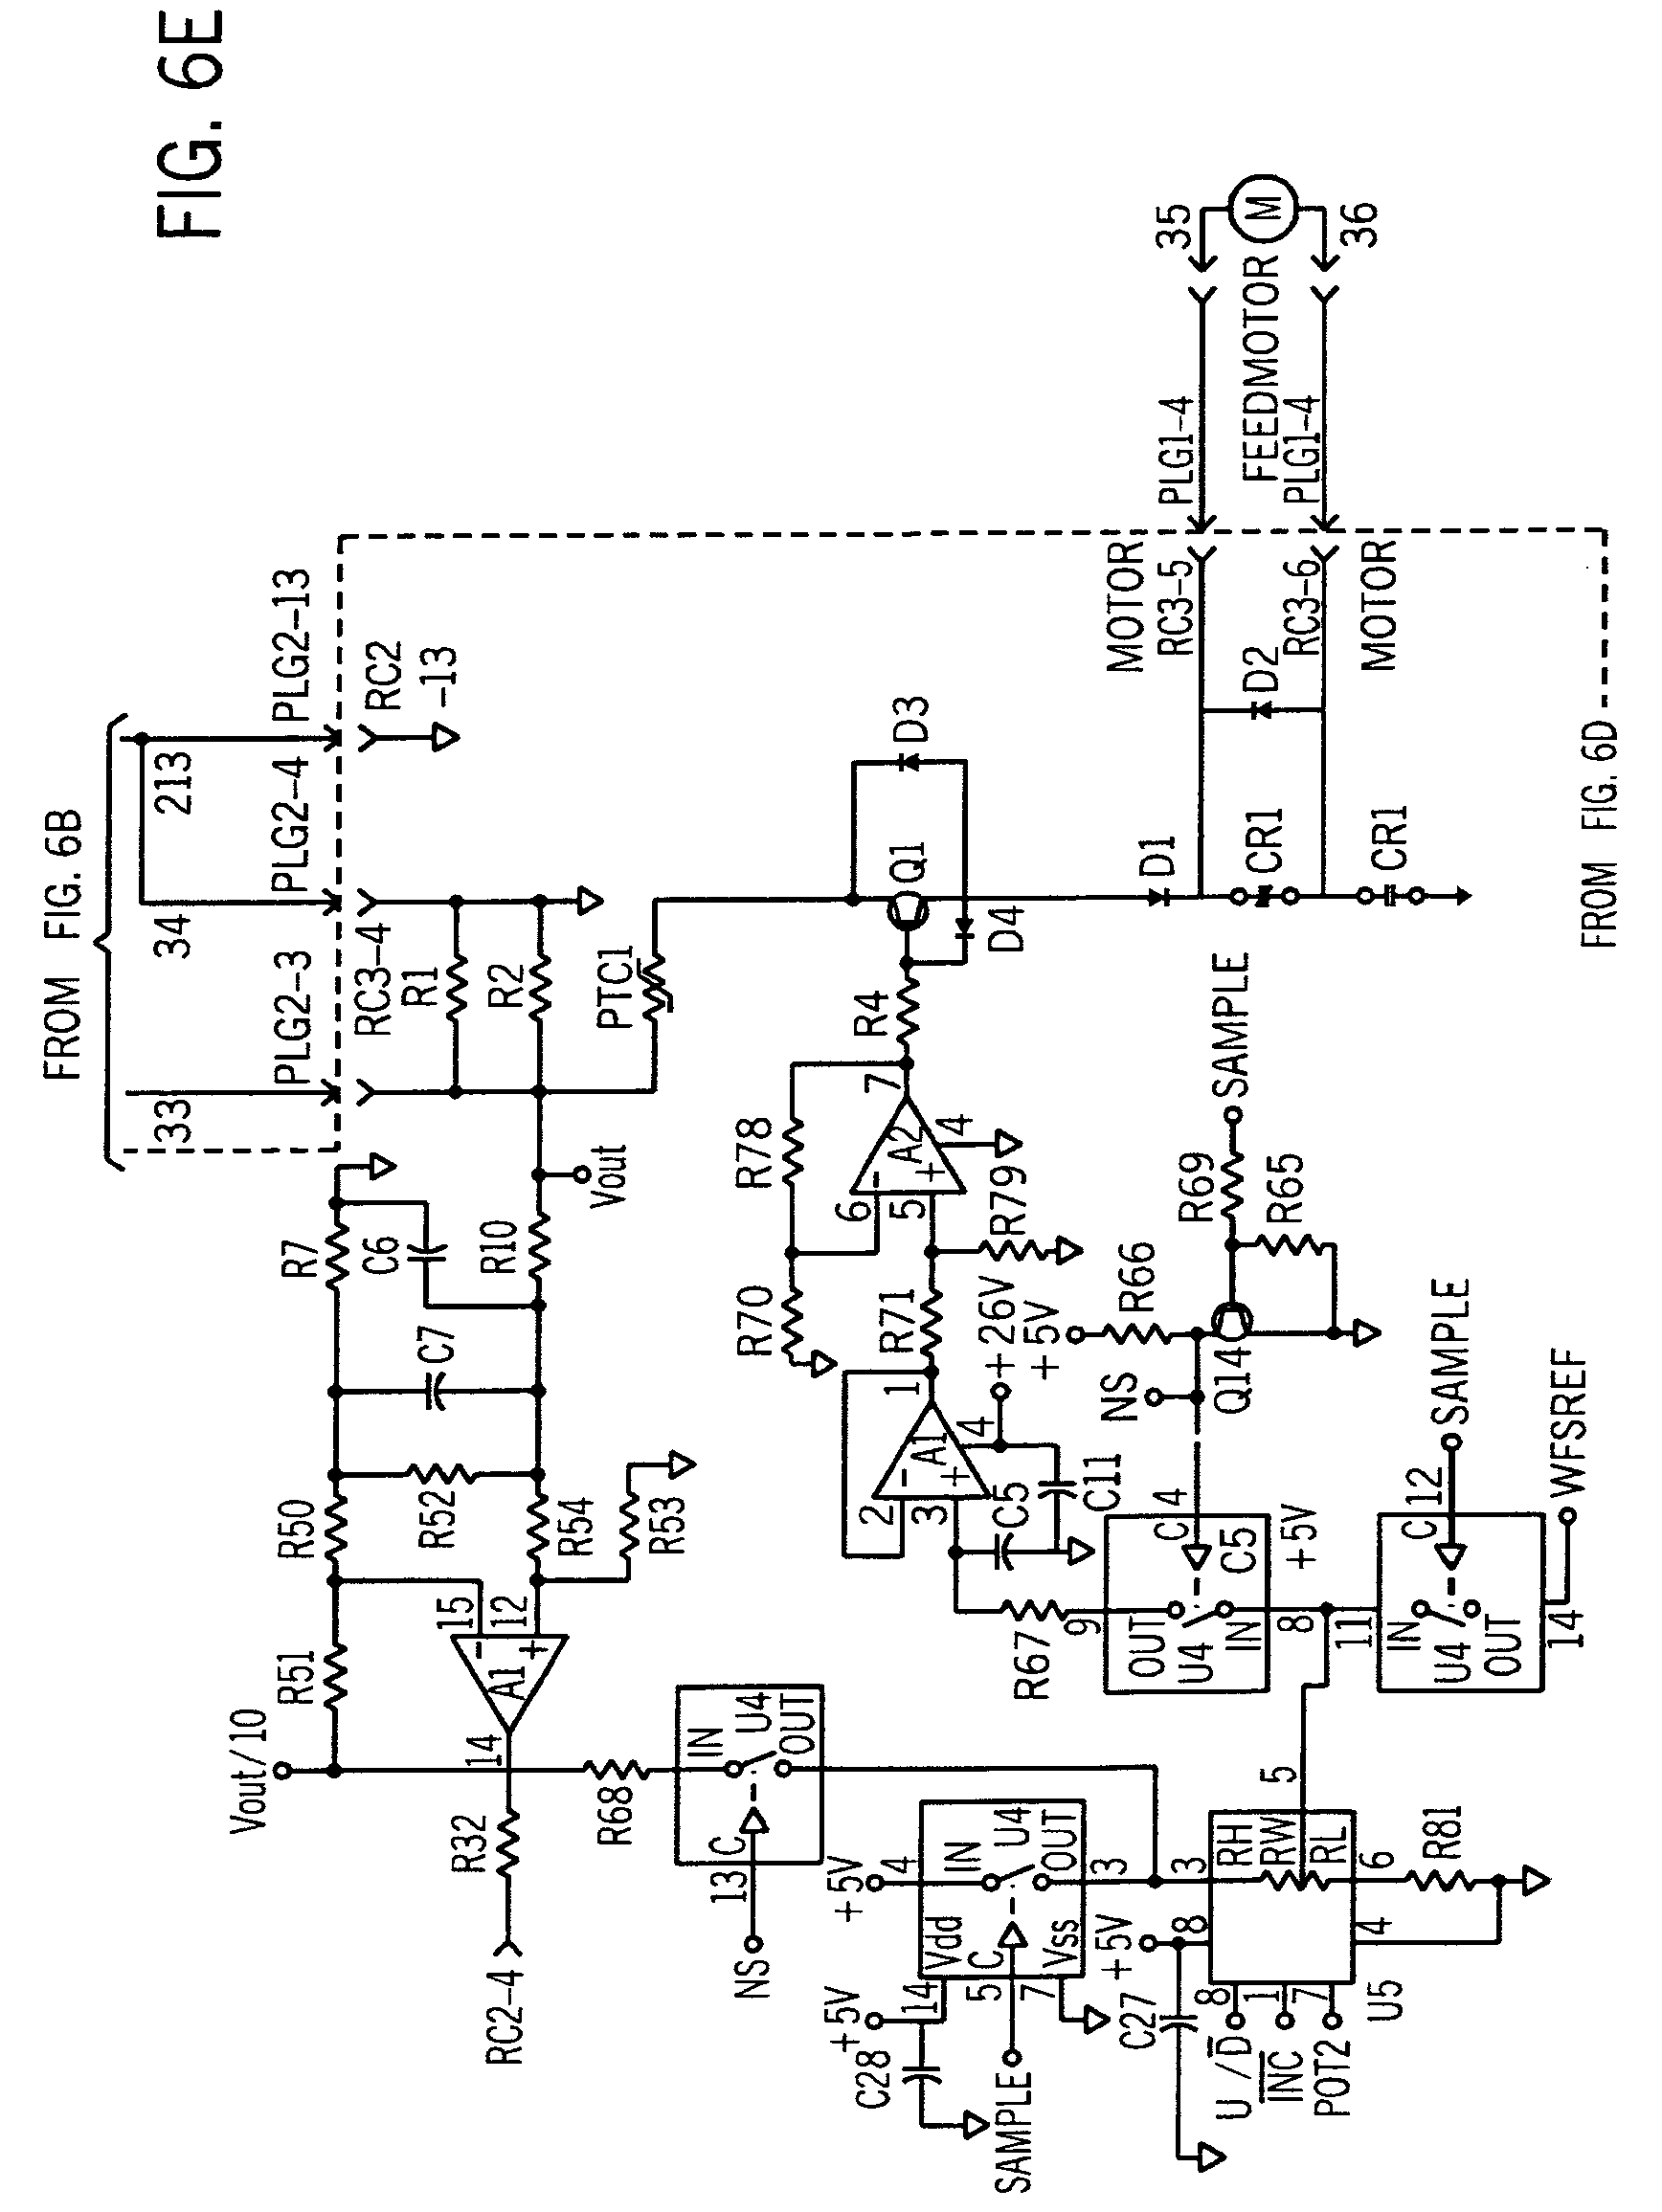 Hobart Welder Wiring Diagram : 28 Wiring Diagram Images